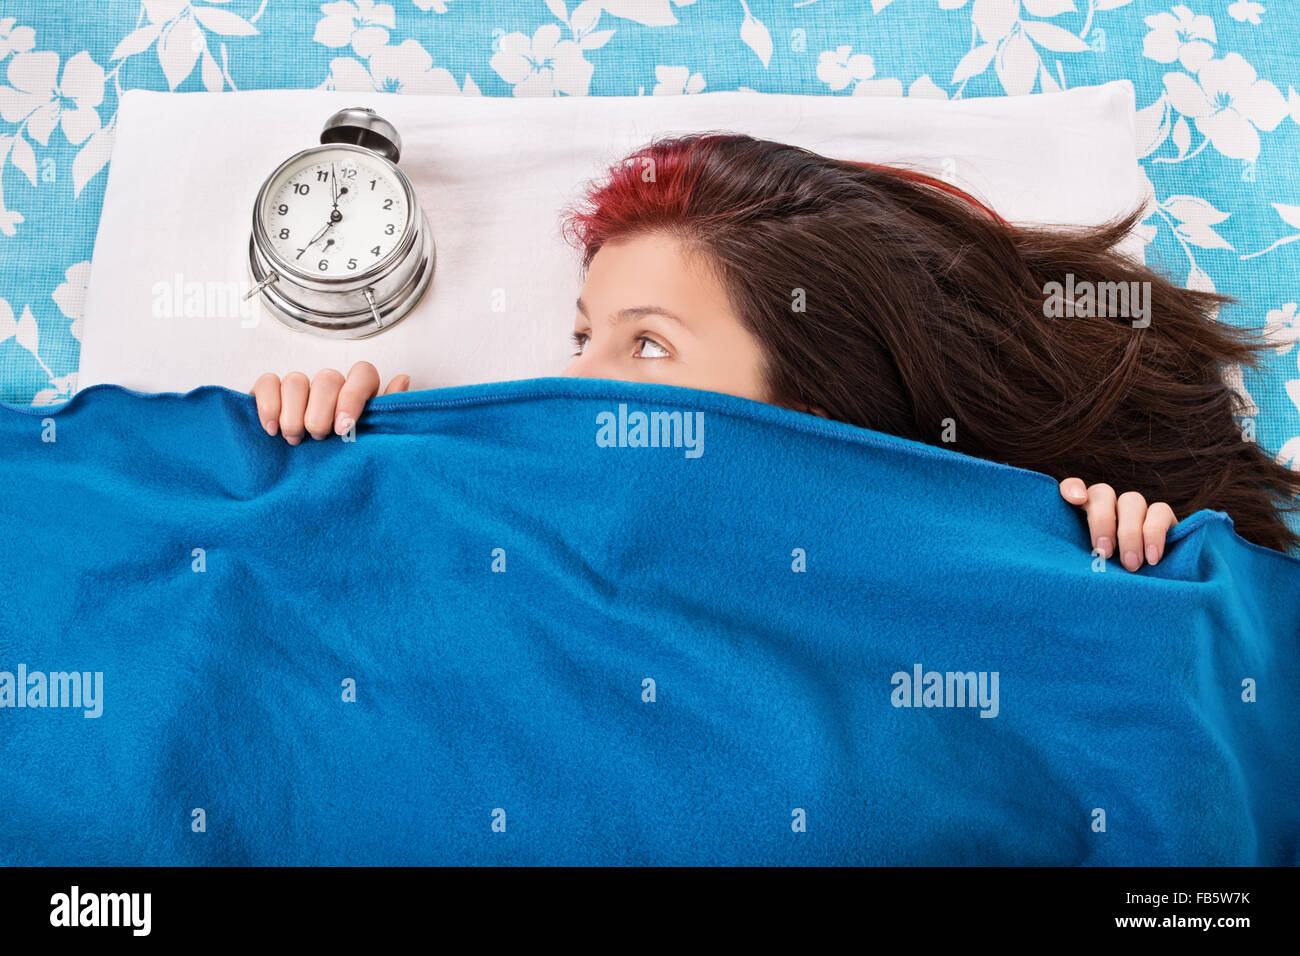 I want to hide from my waking friend today. - Stock Image